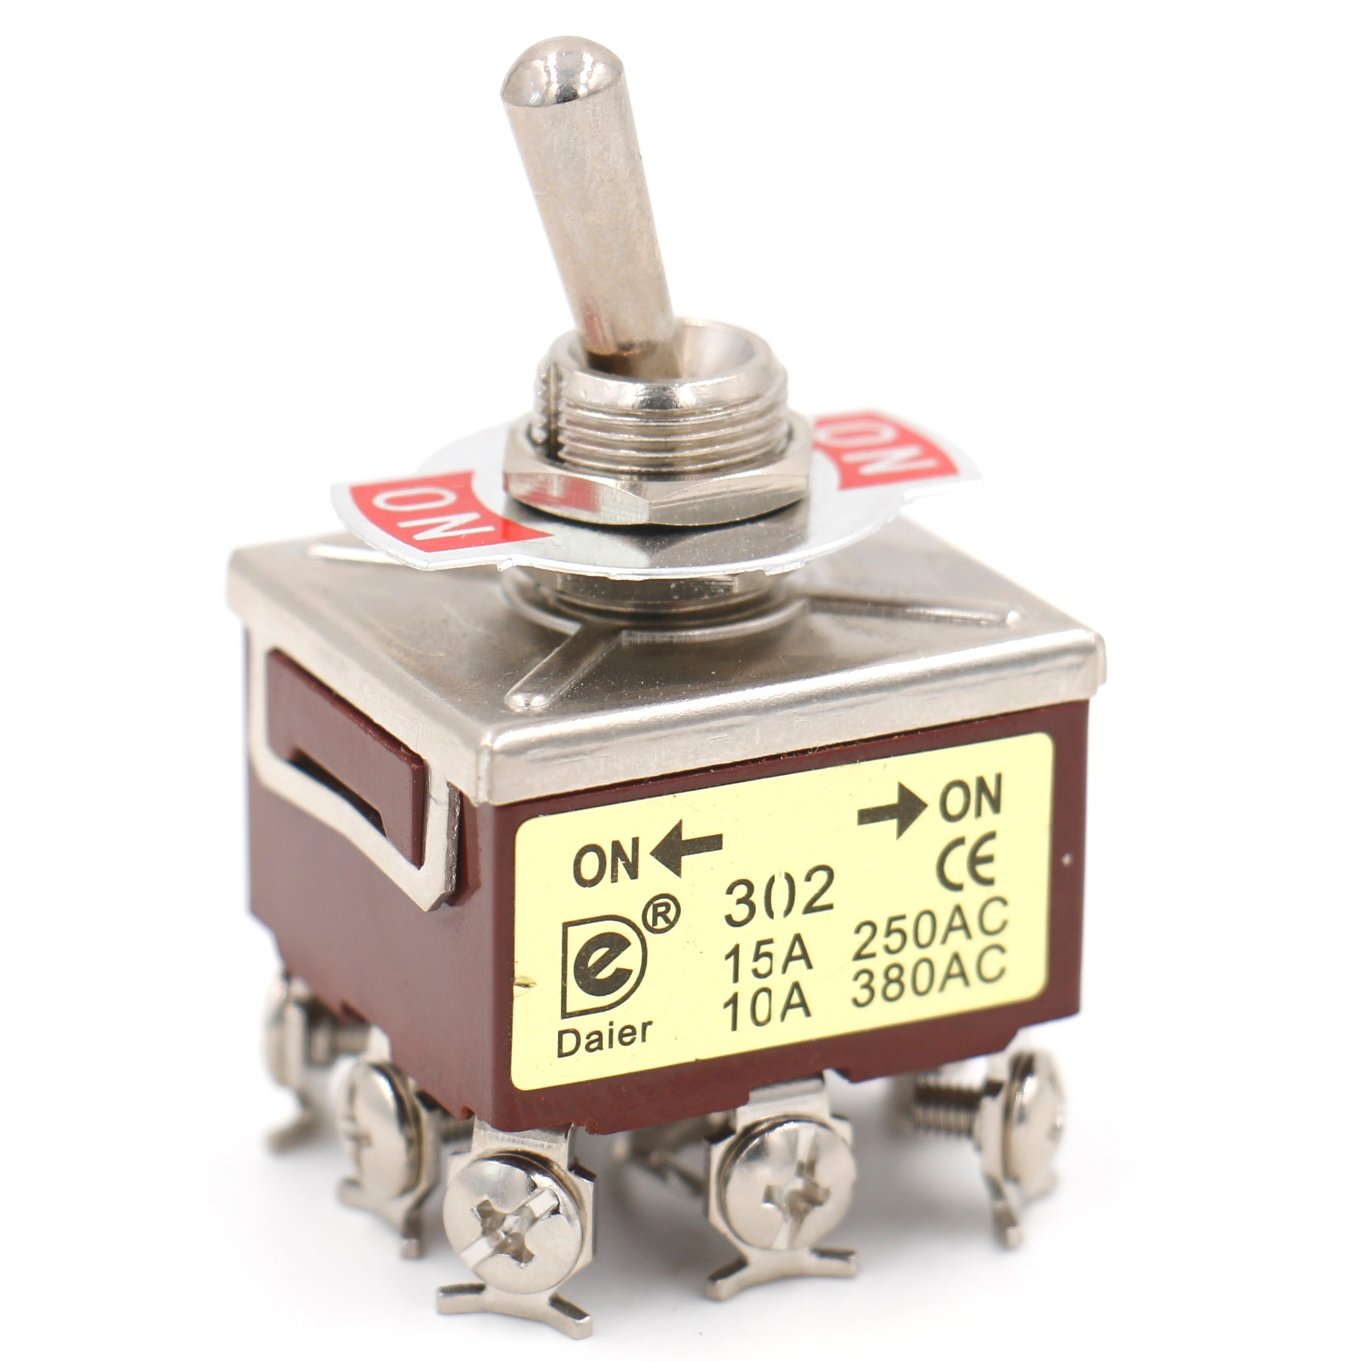 Heschen metal toggle switch 3PDT maintained ON//ON 2 position 15A 250VAC 10A 380VAC CE